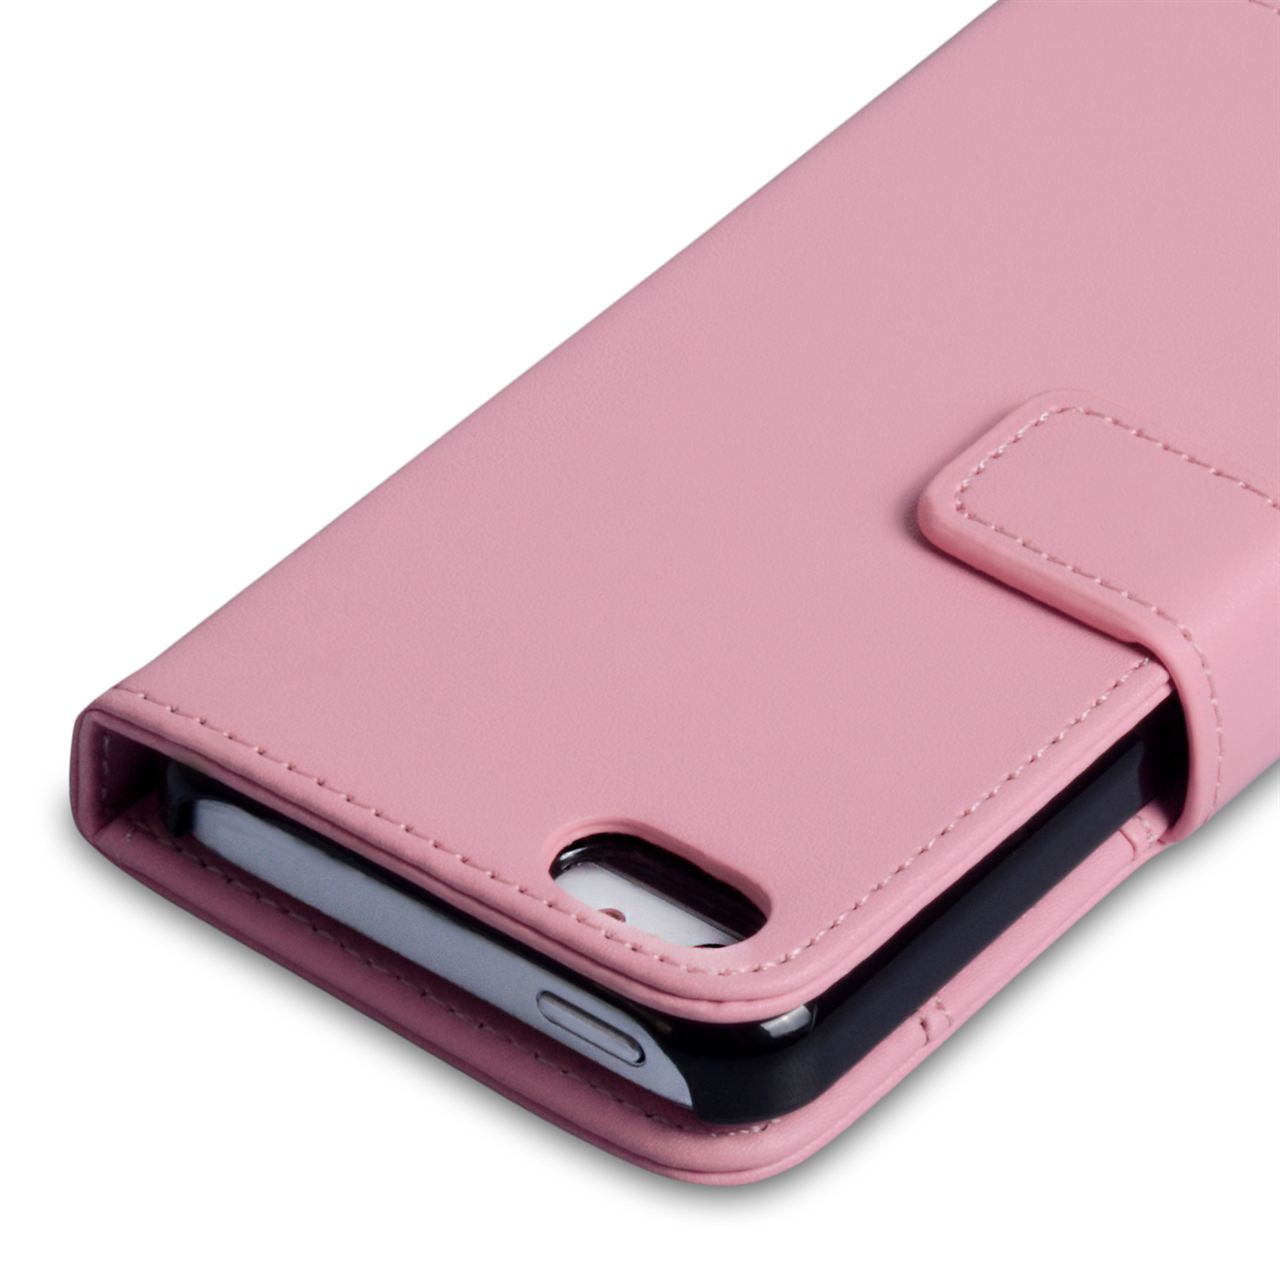 YouSave Accessories iPhone 5C Leather Effect Wallet - Baby Pink